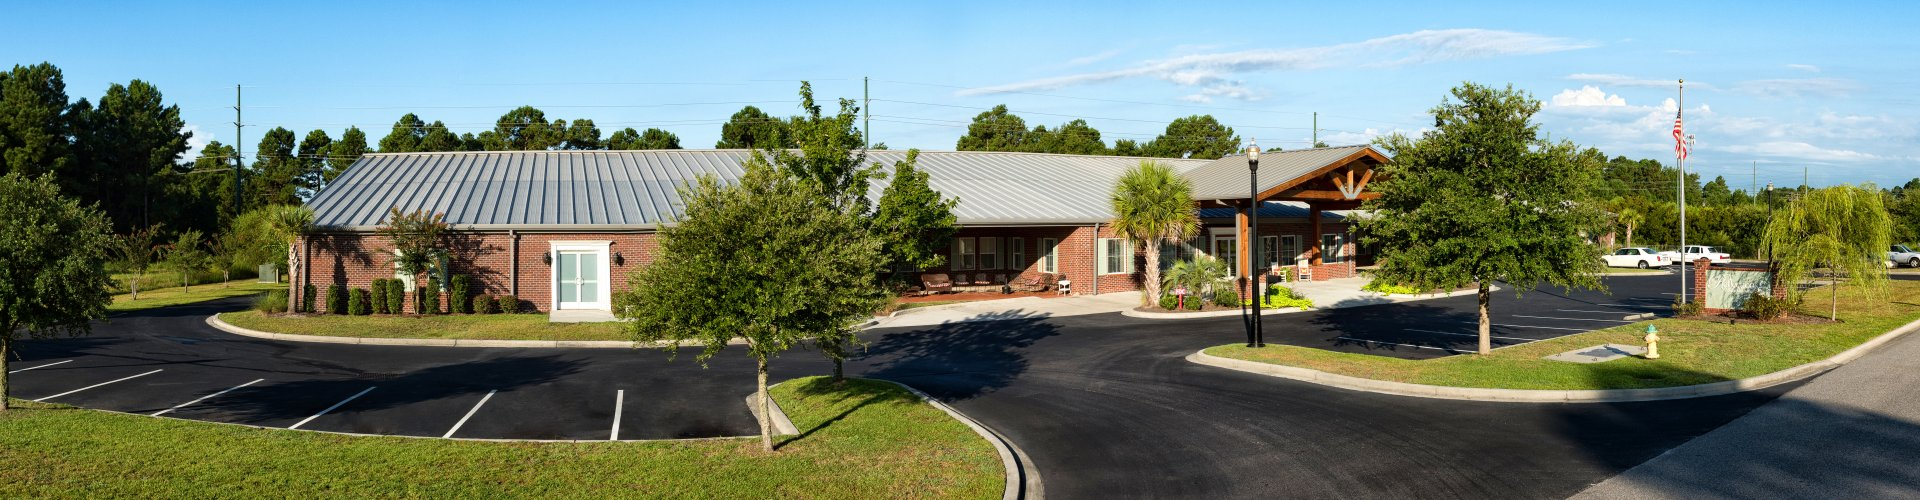 Assisted Living In Myrtle Beach South Carolina